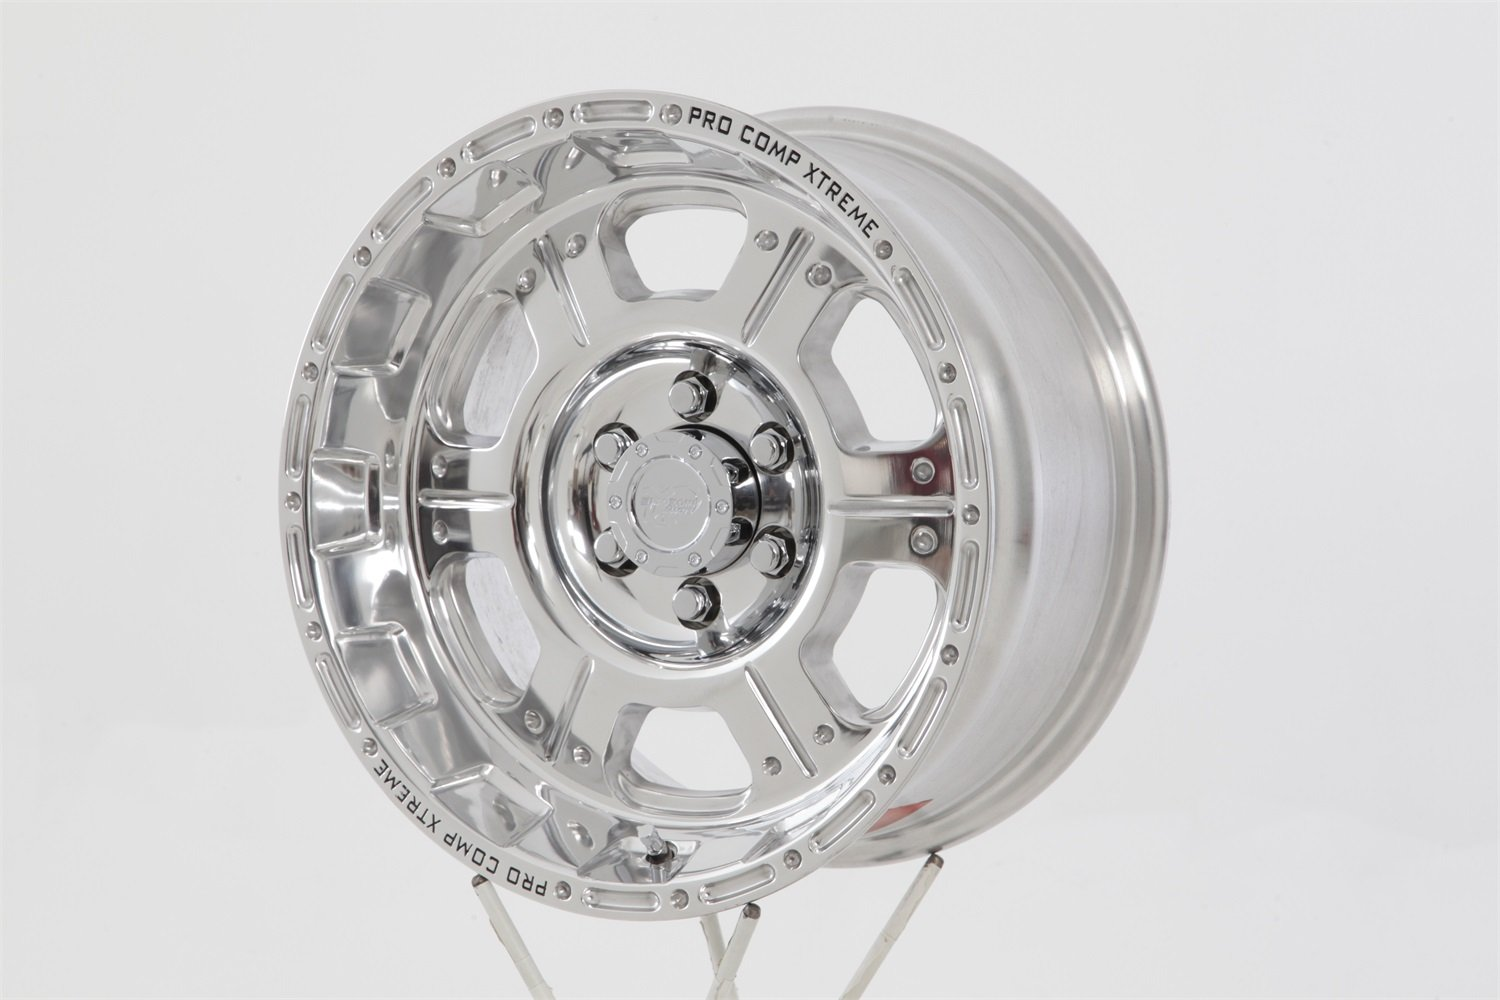 Pro Comp Alloys Series 89 Wheel with Polished Finish (16x8''/6x139.7mm)